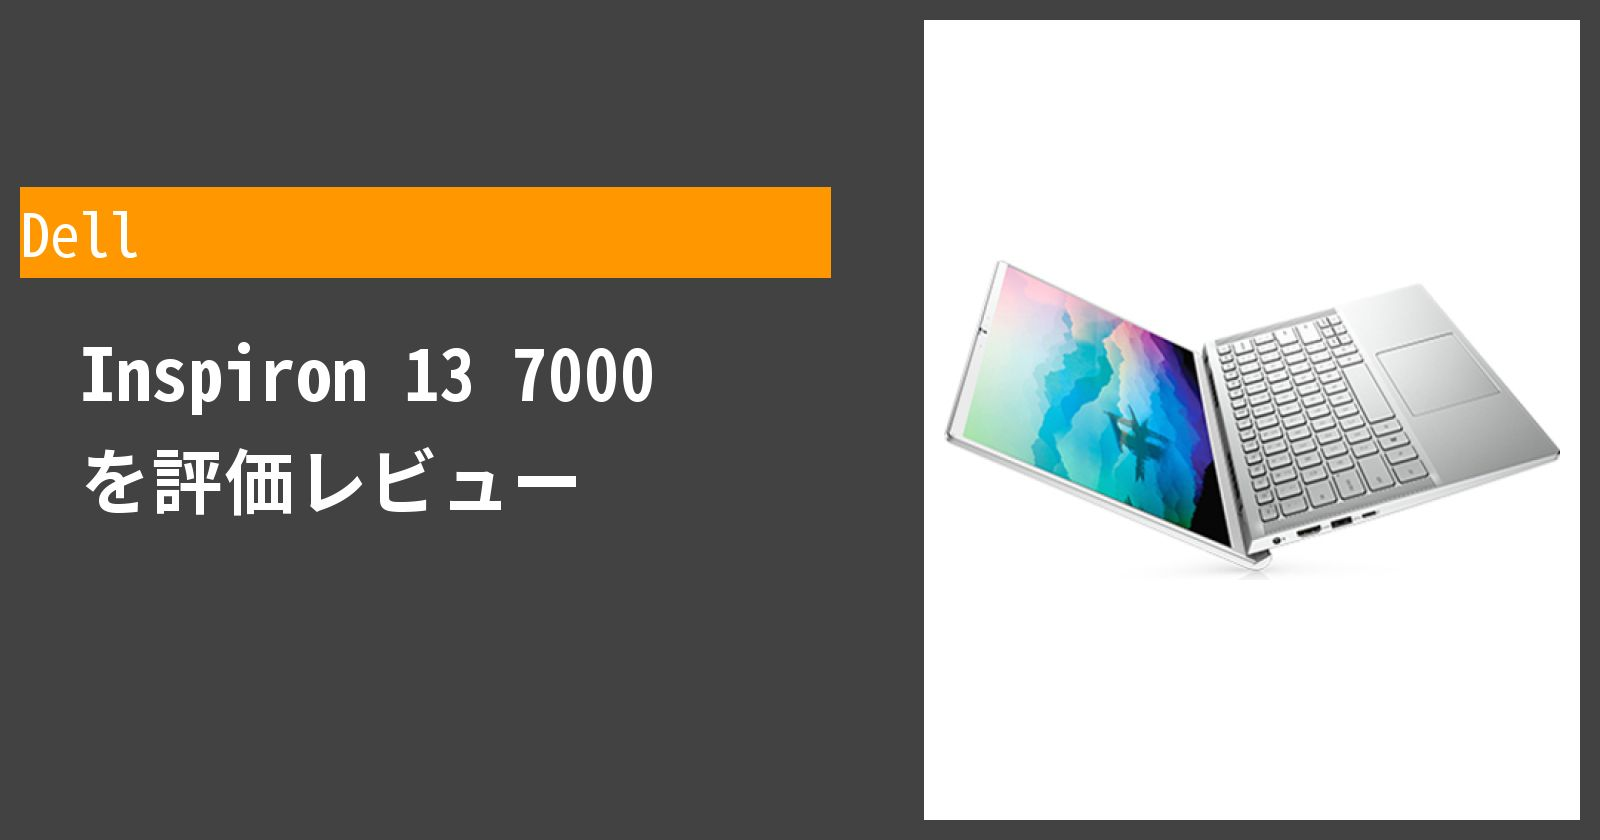 Inspiron 13 7000を徹底評価